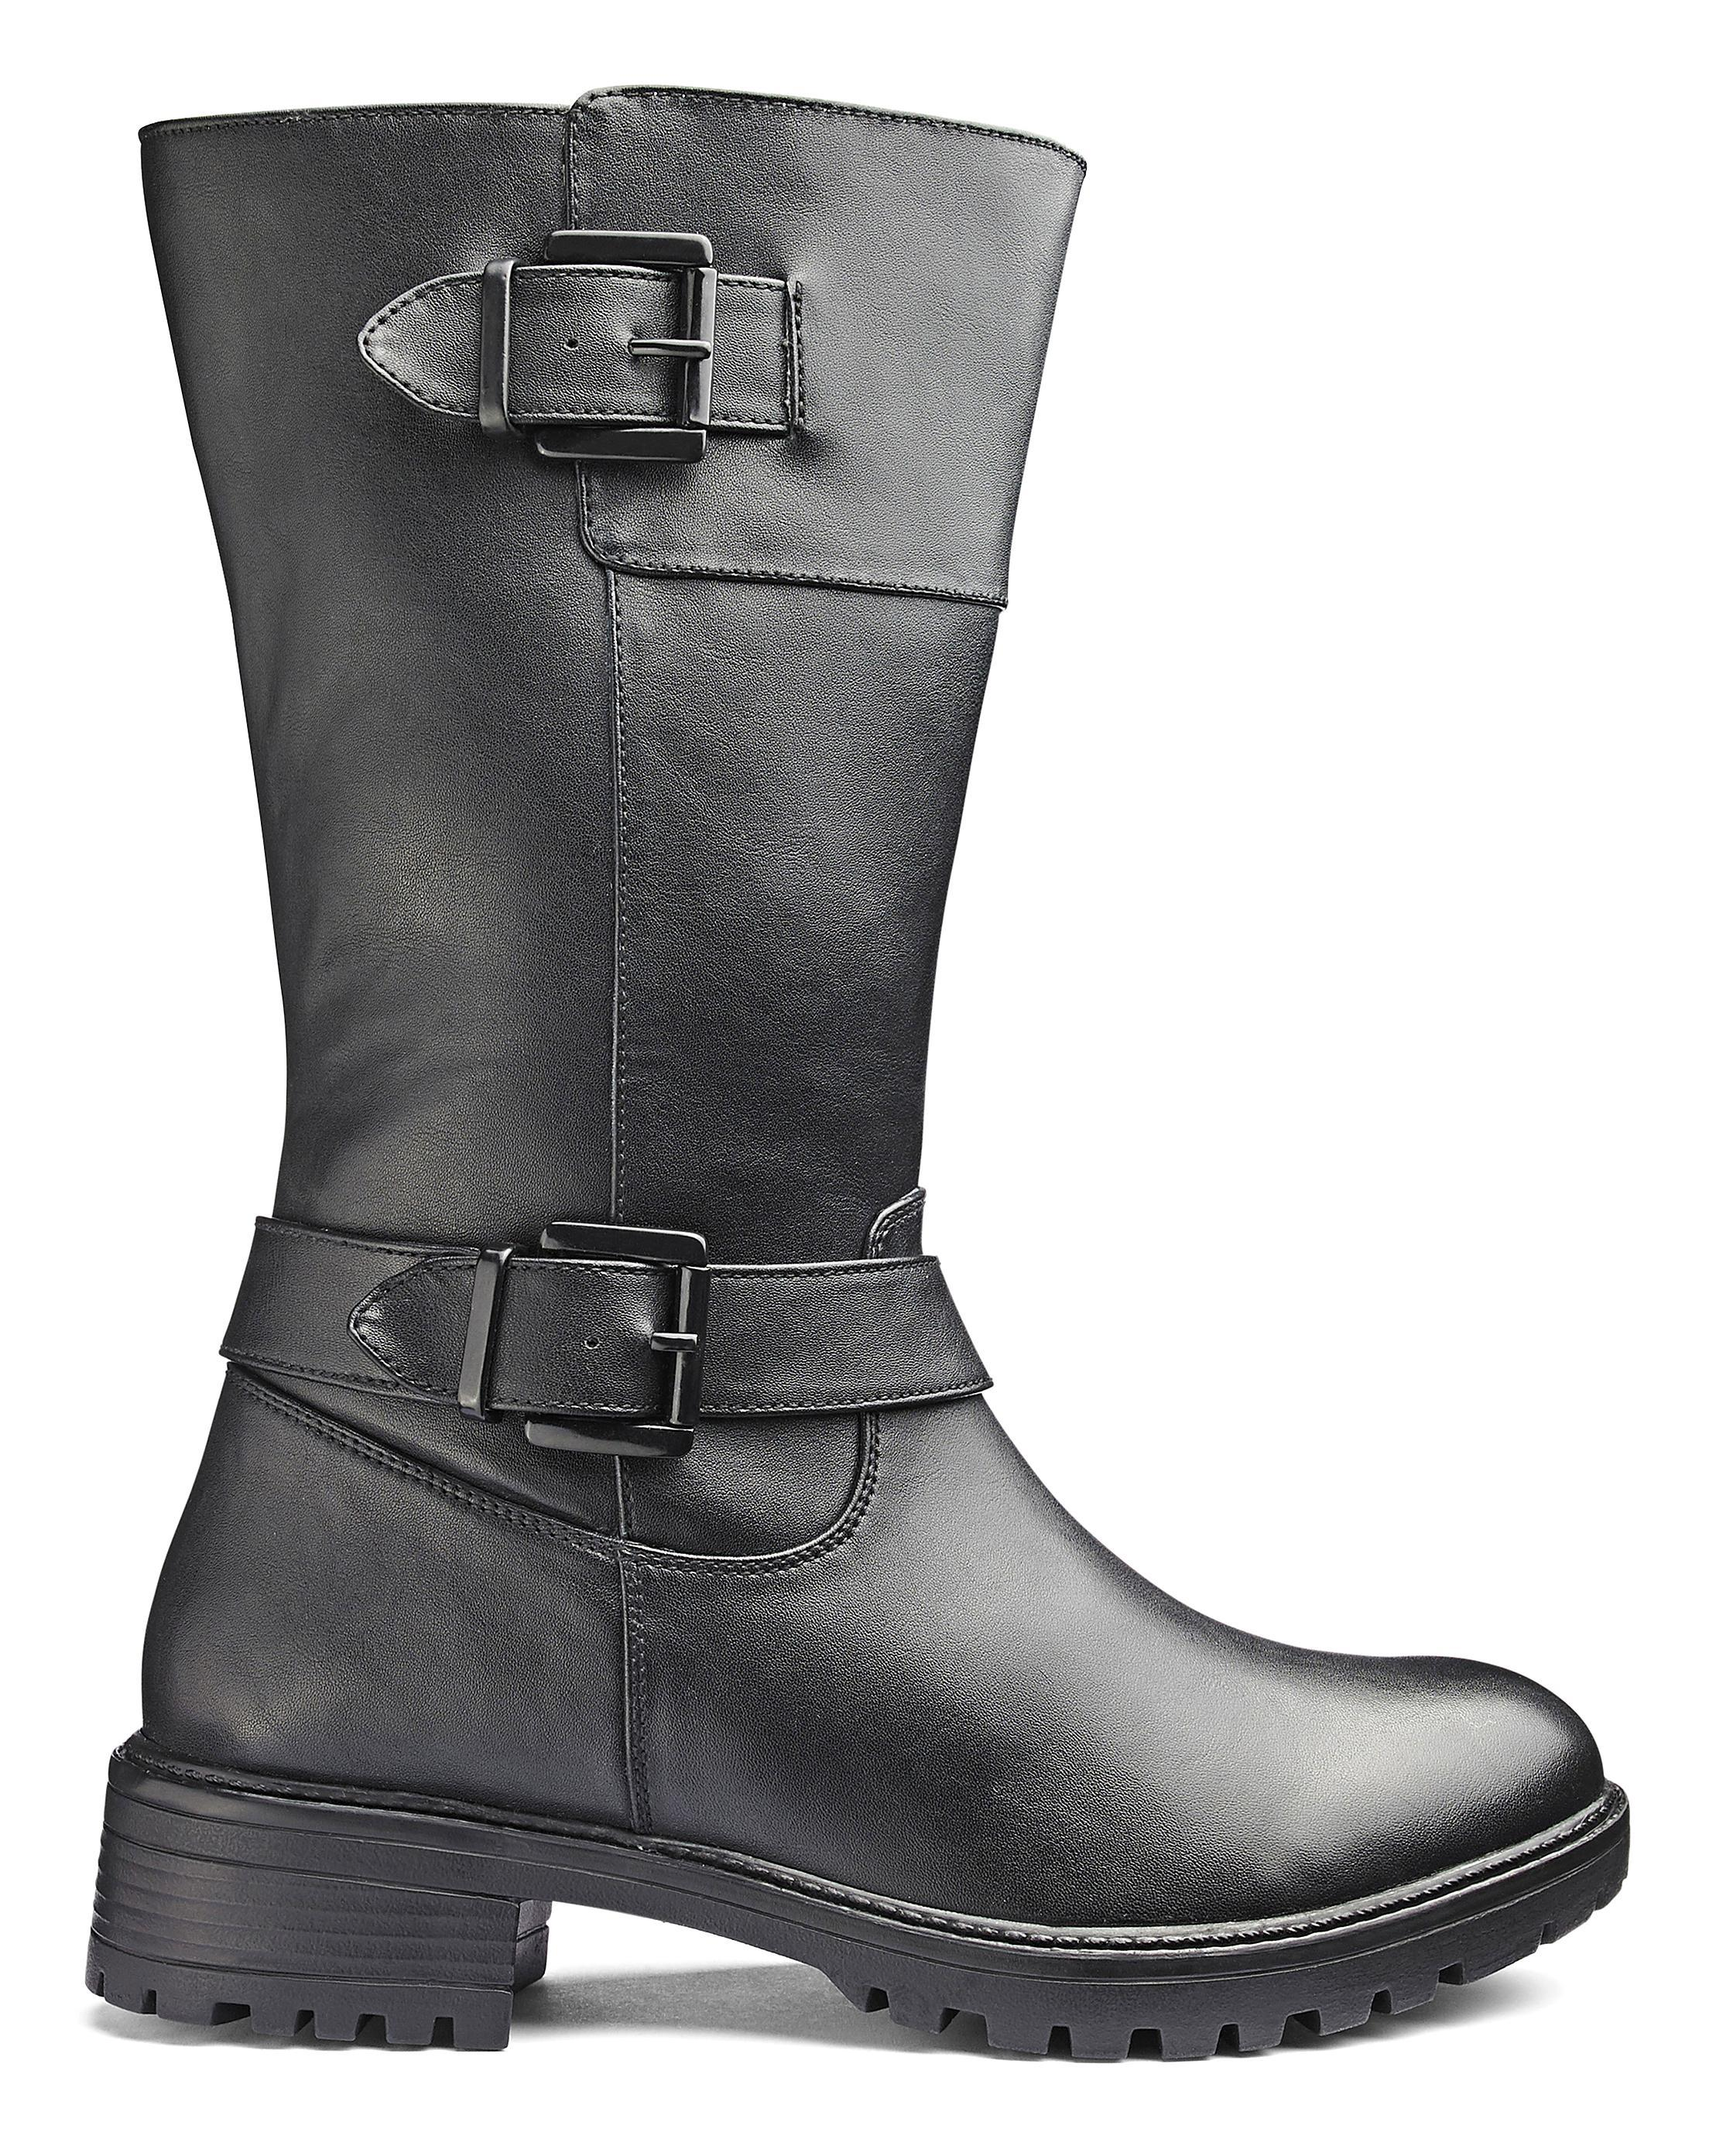 dbf7089412f Lyst - Simply Be Jackie Boots in Black